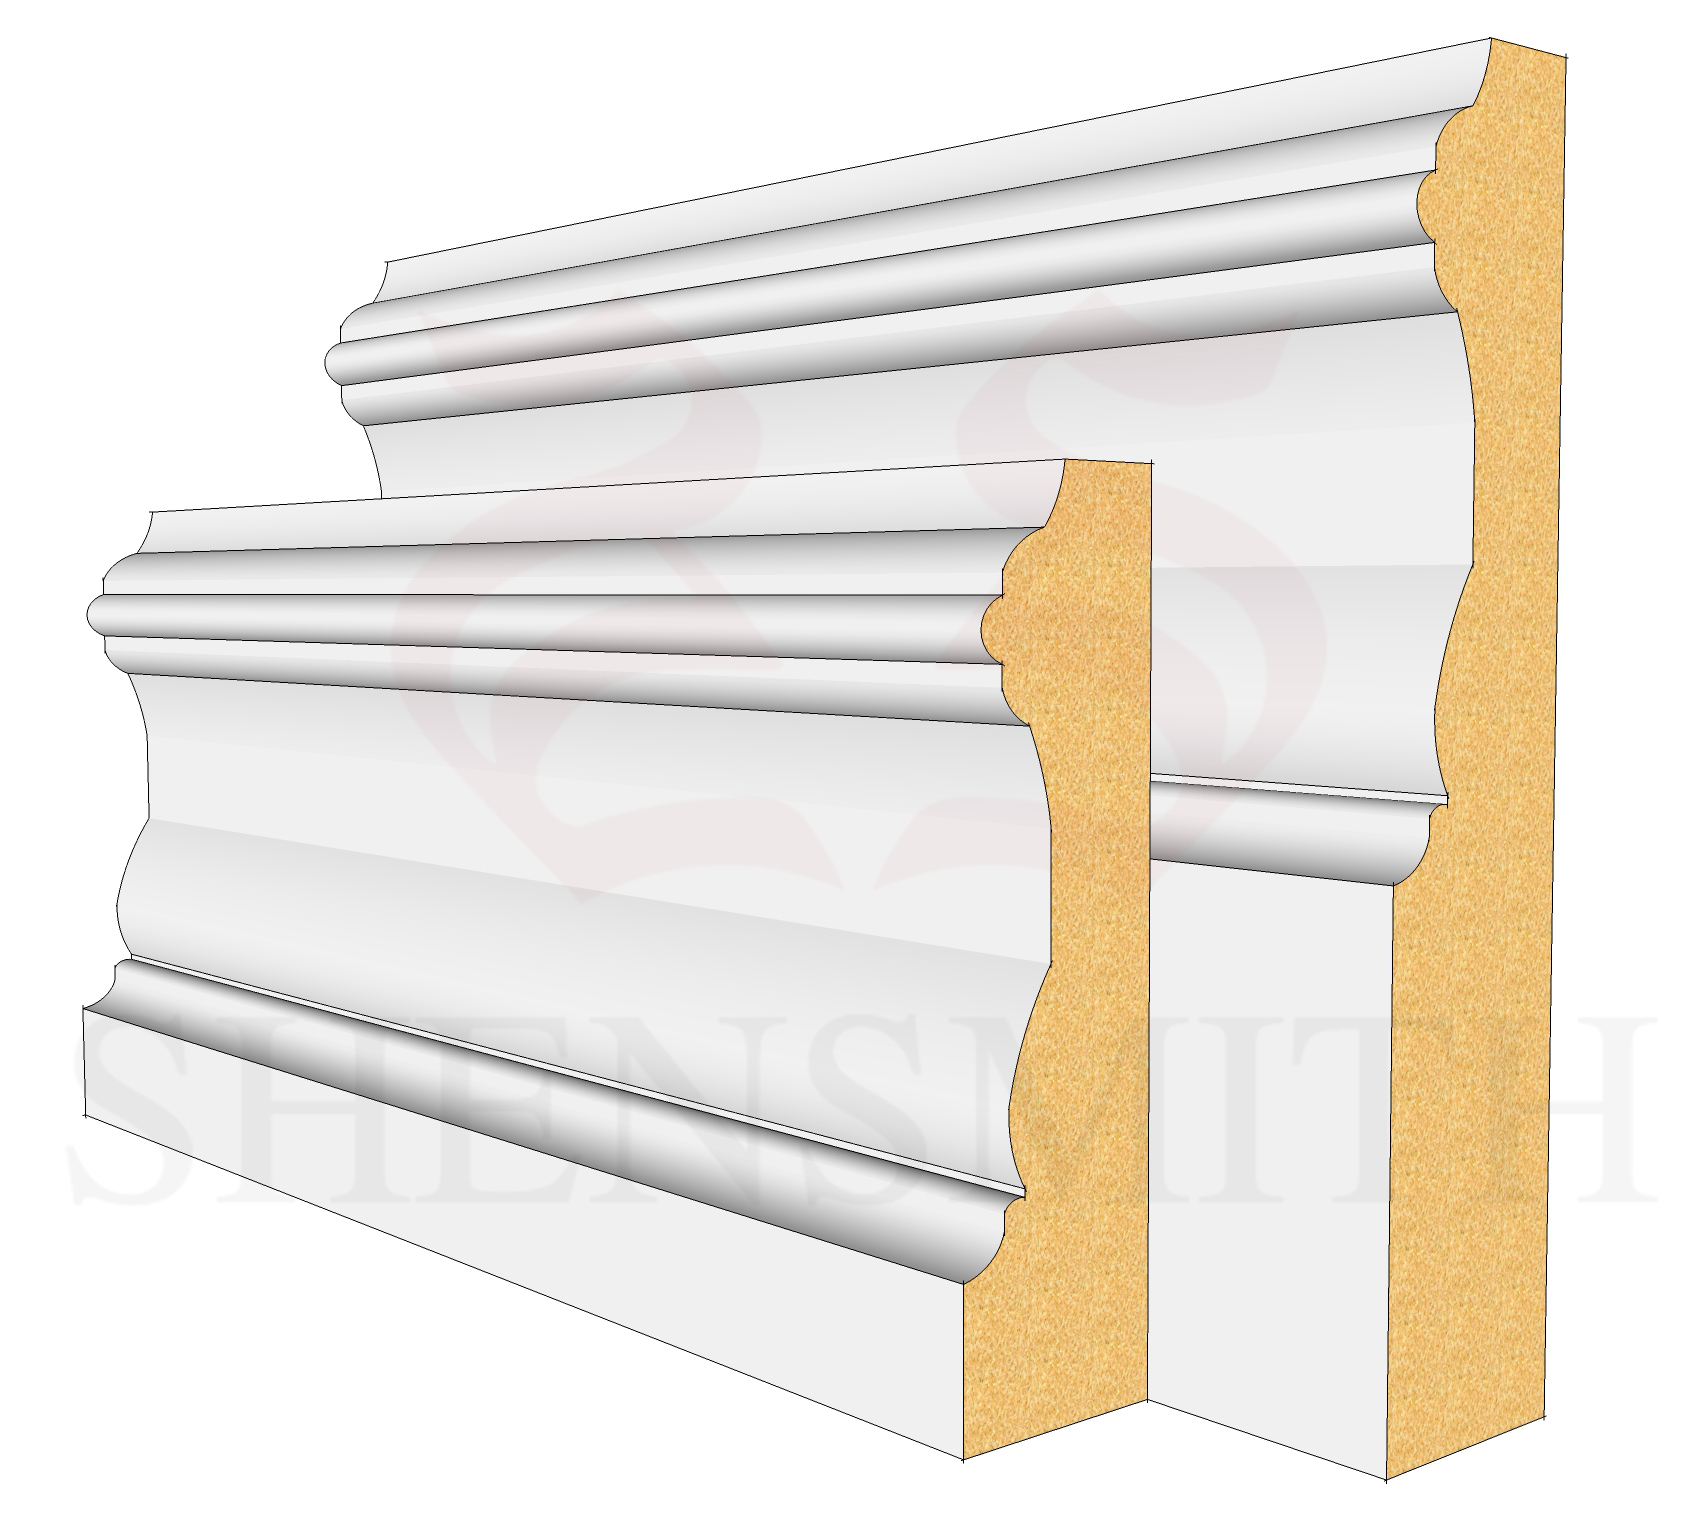 Windsor Profile Skirting Board